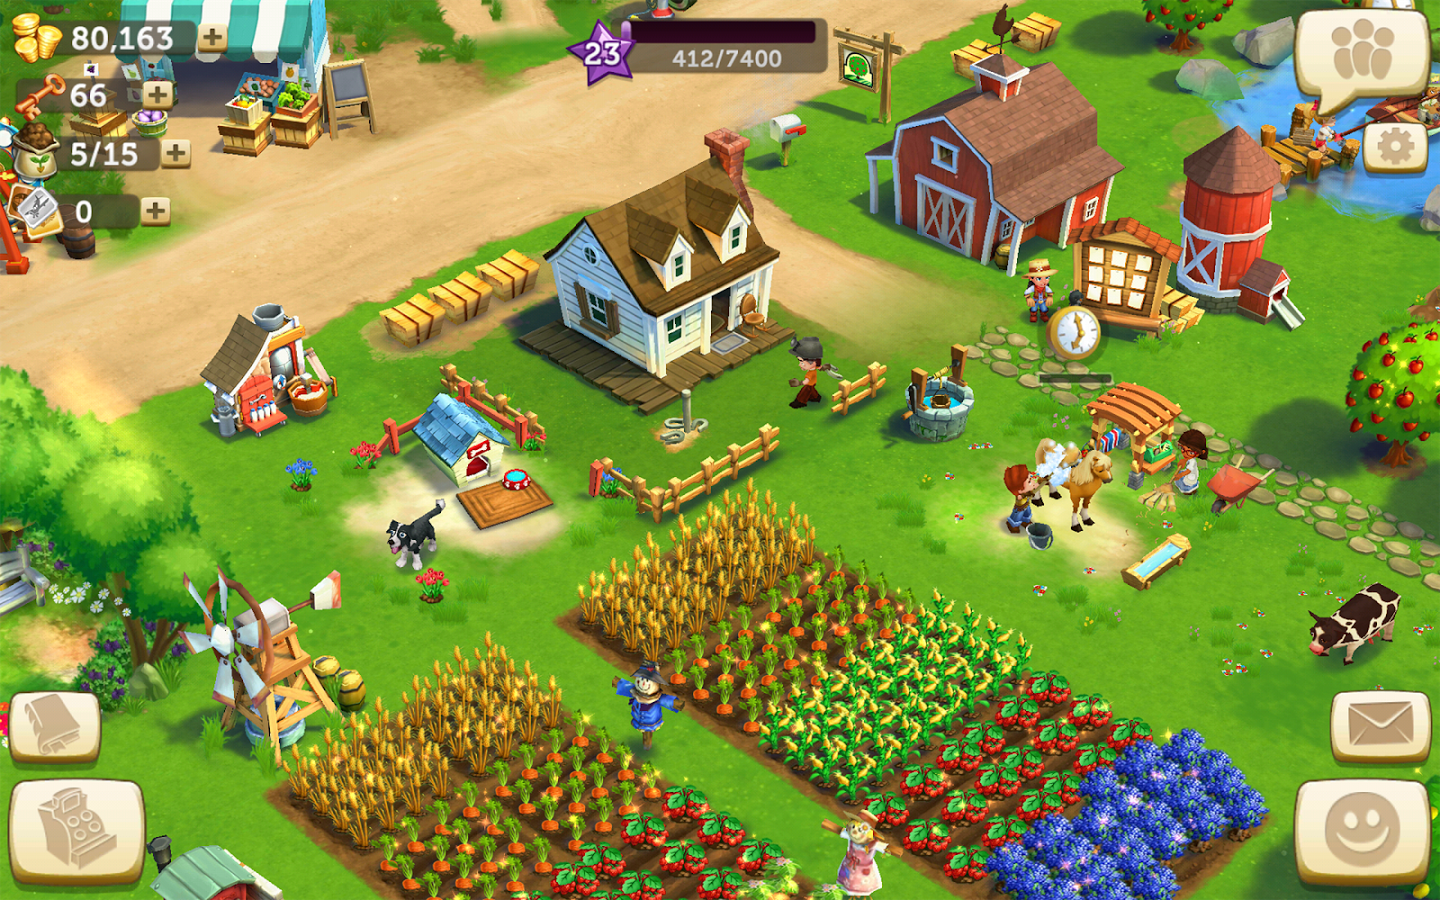 Download farmville 2: country escape 6. 5. 1262 apk for pc free.